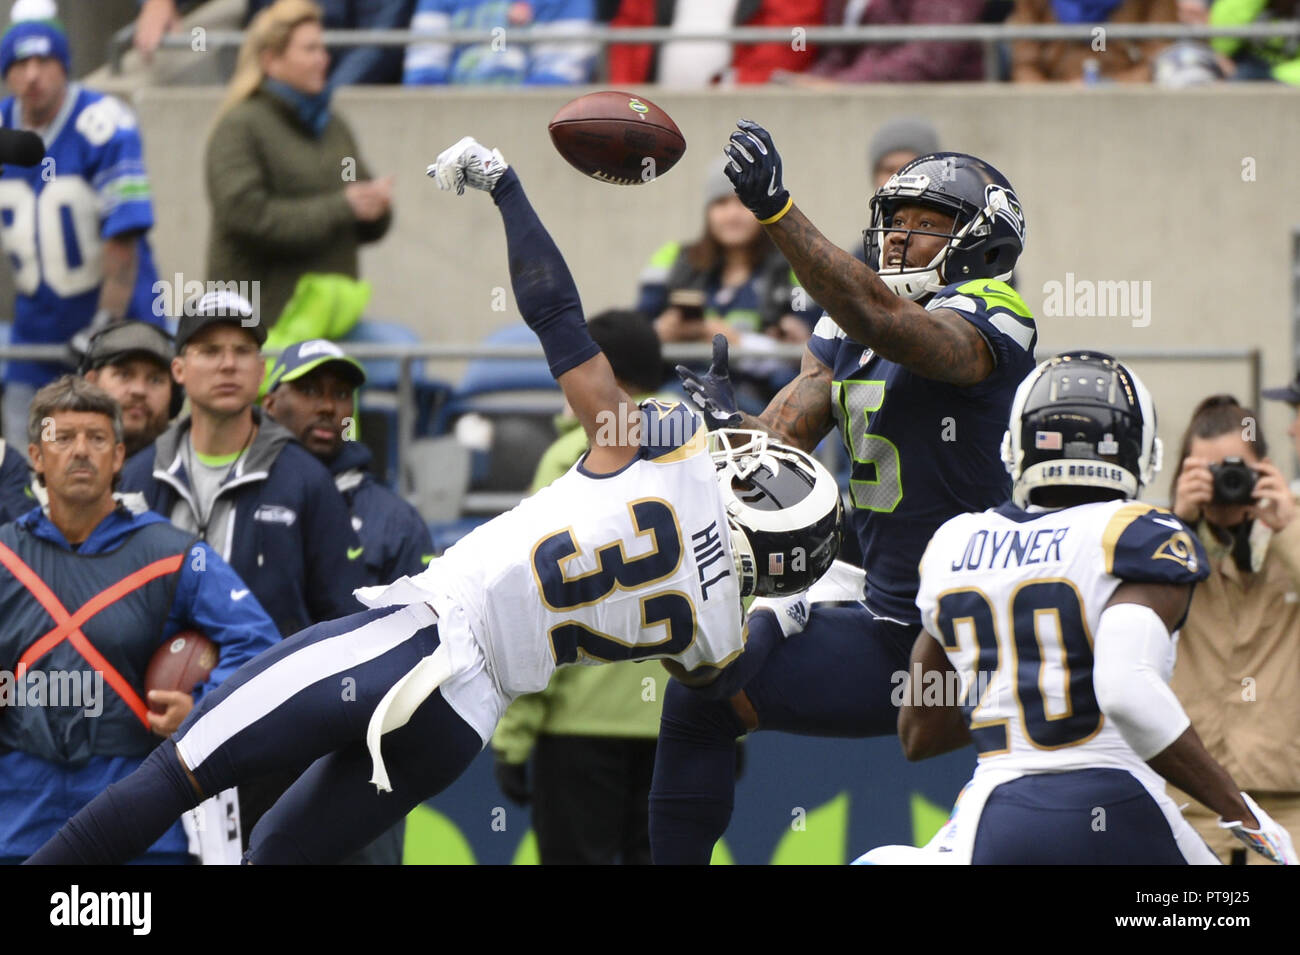 a6b055f8 Seattle, Washington, USA. 7th Oct, 2018. Seahawk receiver BRANDON MARSHALL  (15) and defender TROY HILL (32) go up for a RUSSELL WILSON ...